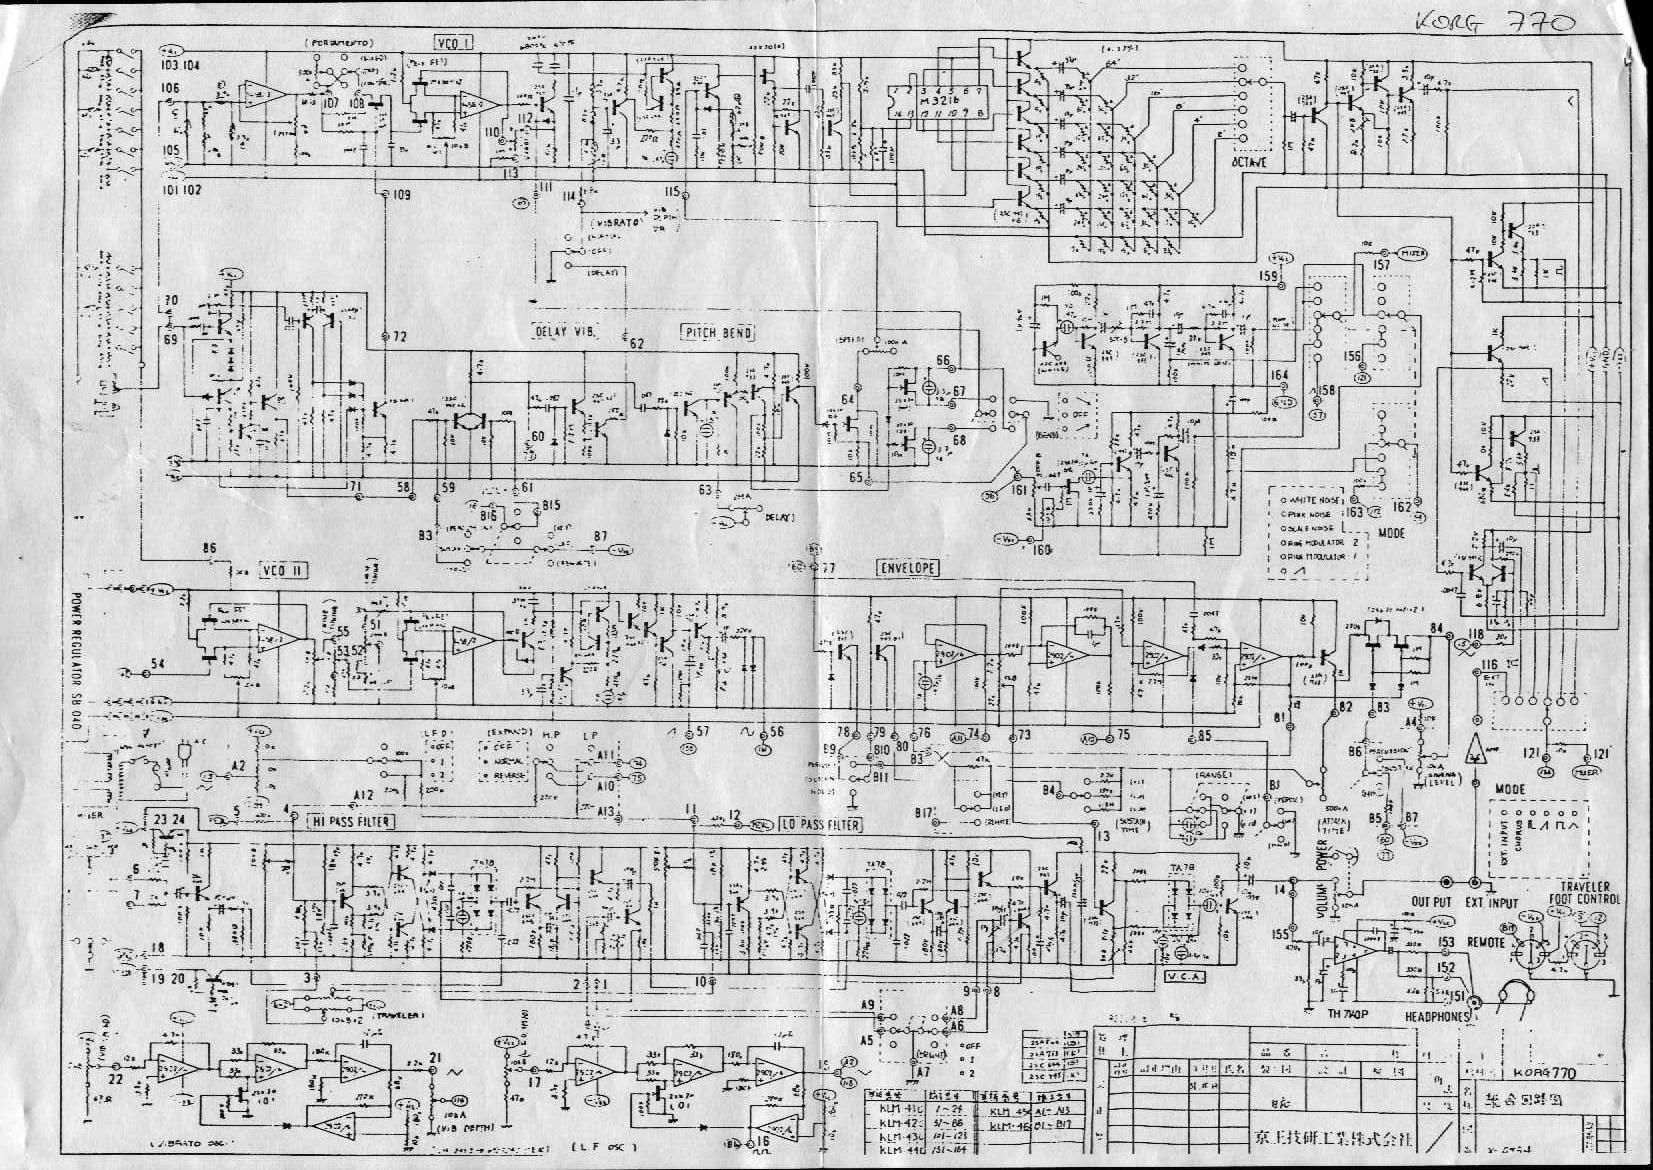 Listing All Files Thomas Henry 555 Vco Circuit Working Outs 770